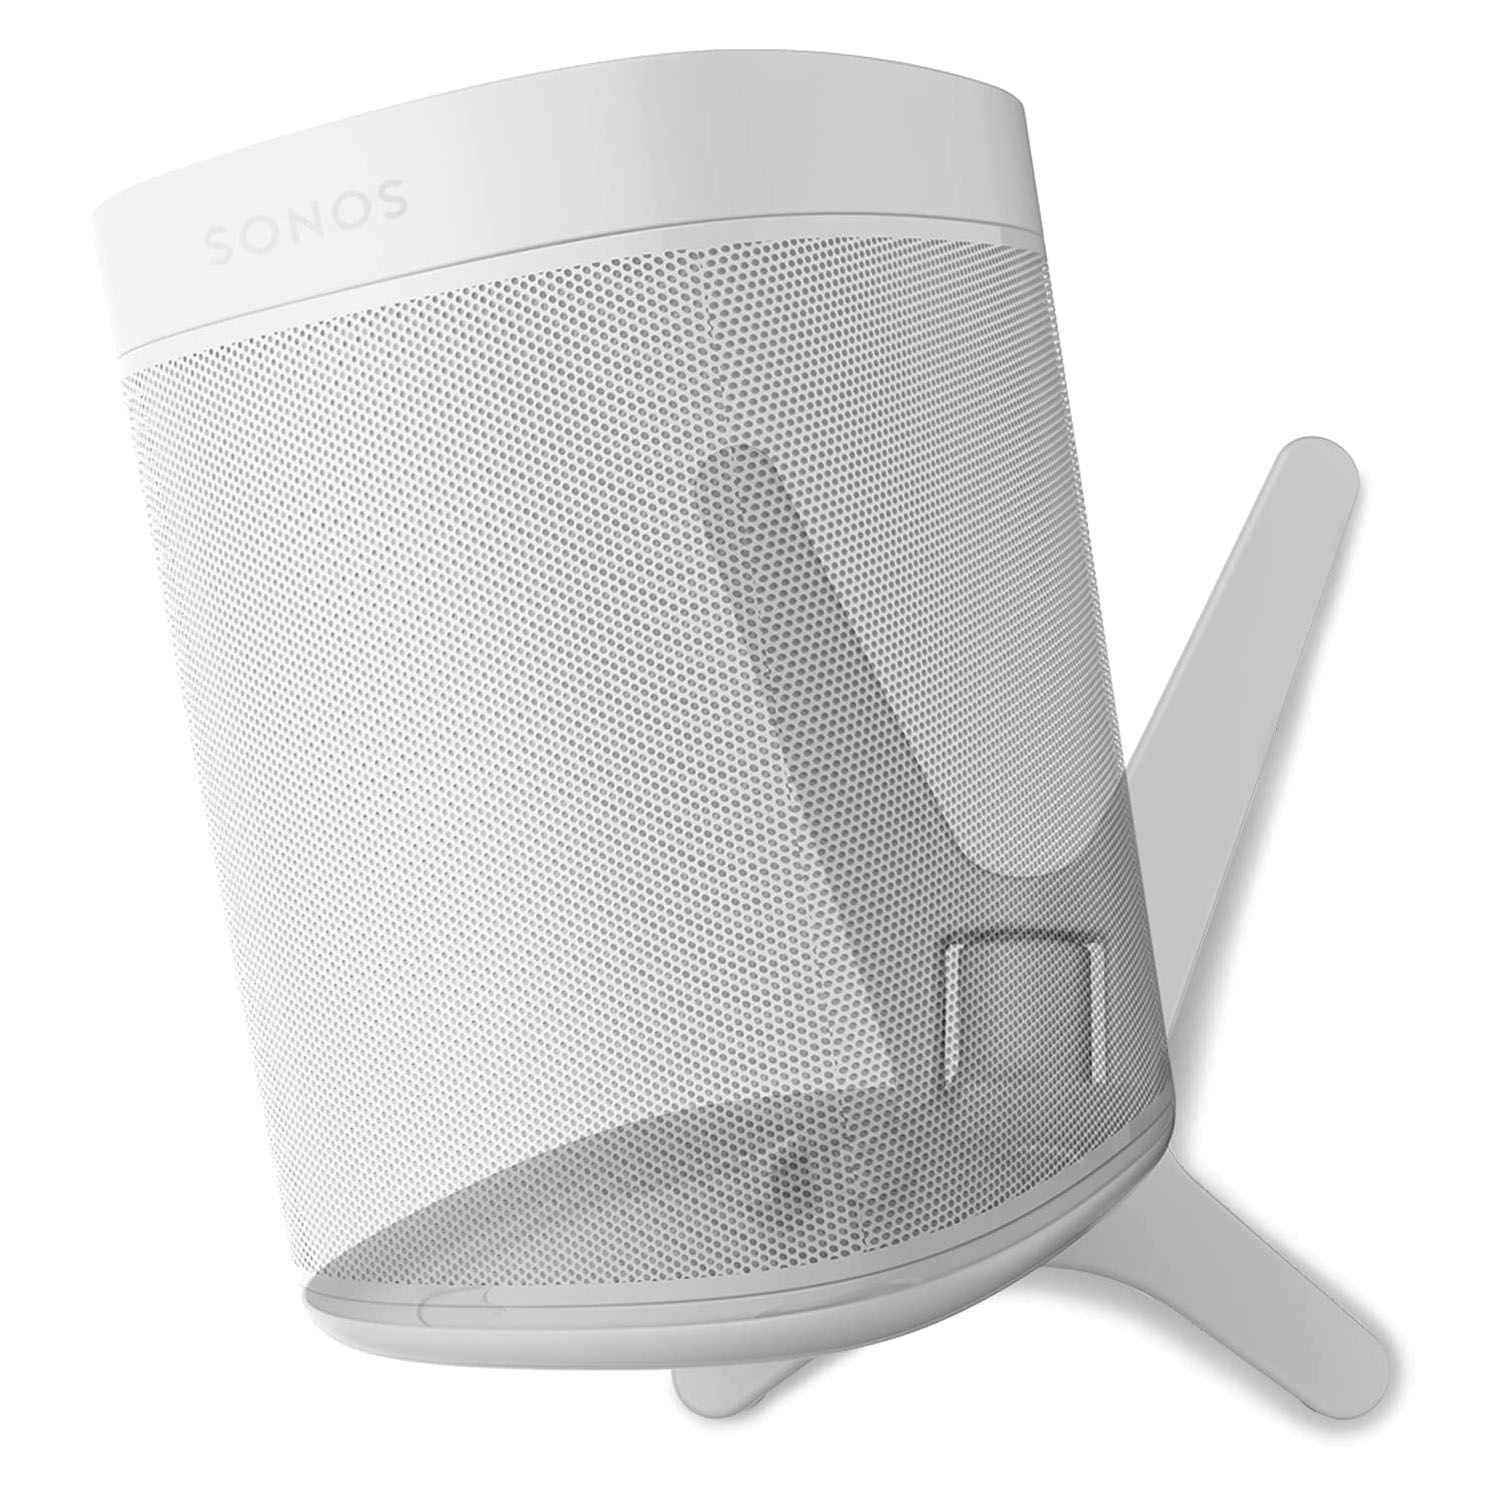 ONE, ONE SL, Play:1 - Premium X Wall Mount Bracket - White - Compatible with SONOS ONE, ONESL & Play:1